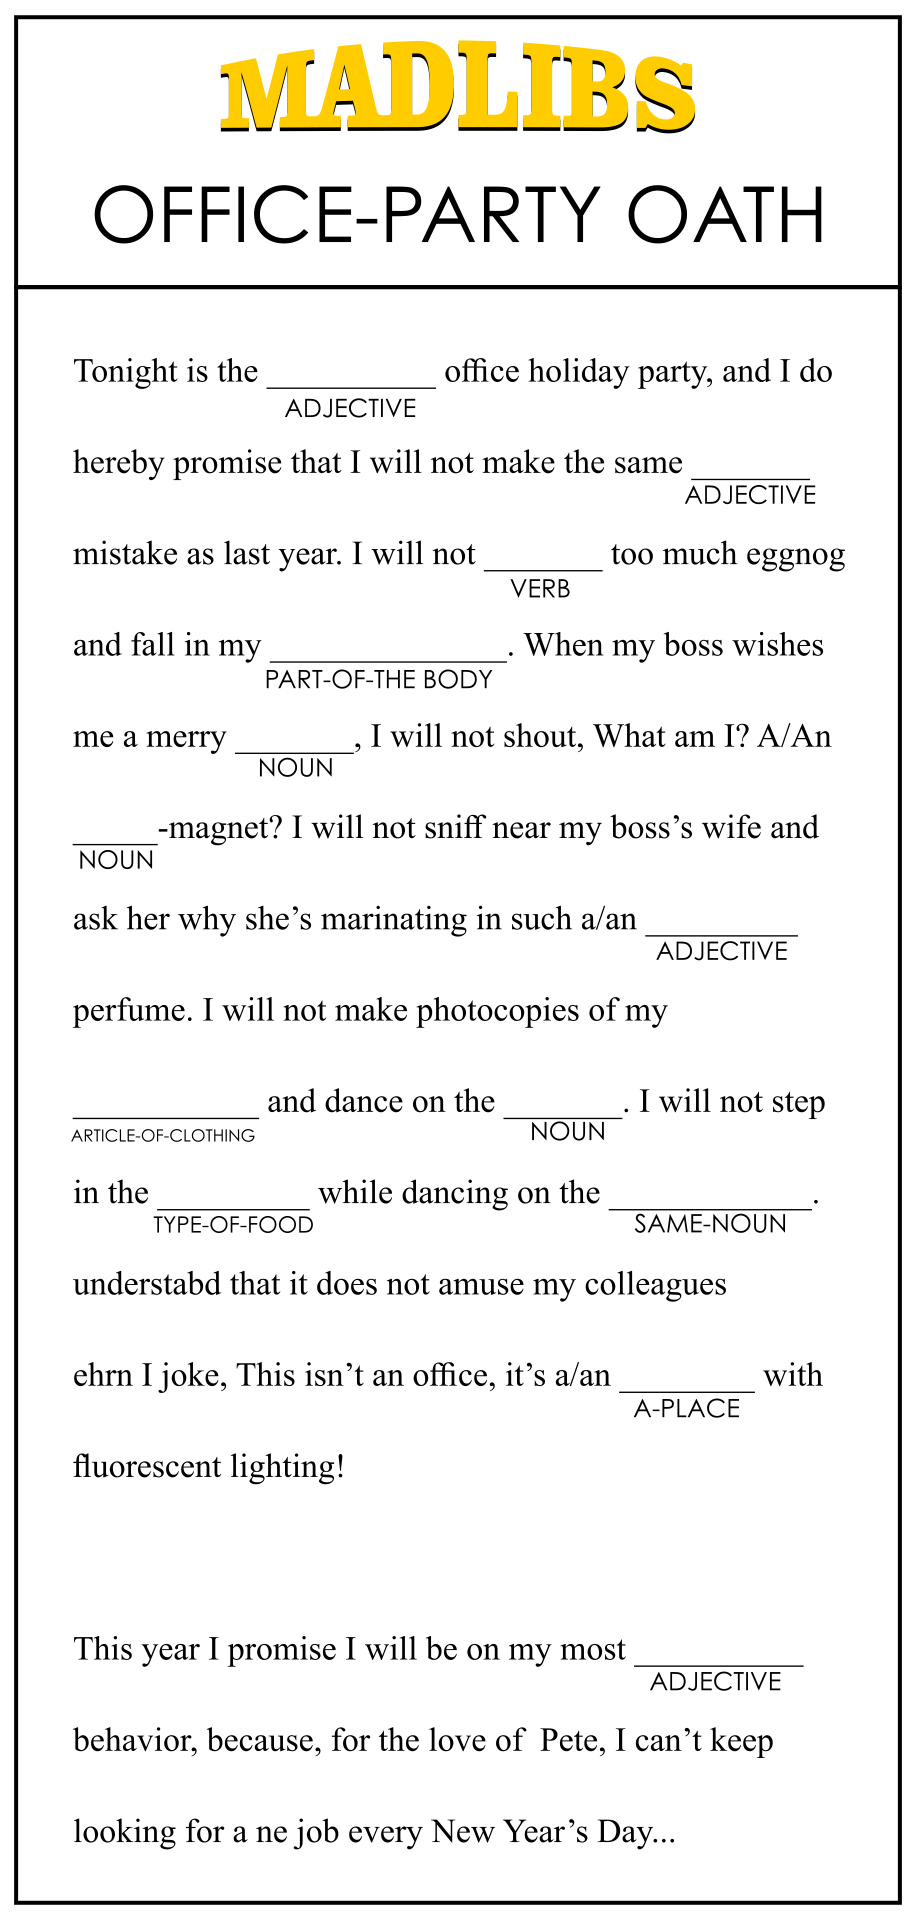 Printable Mad Libs For Office Party